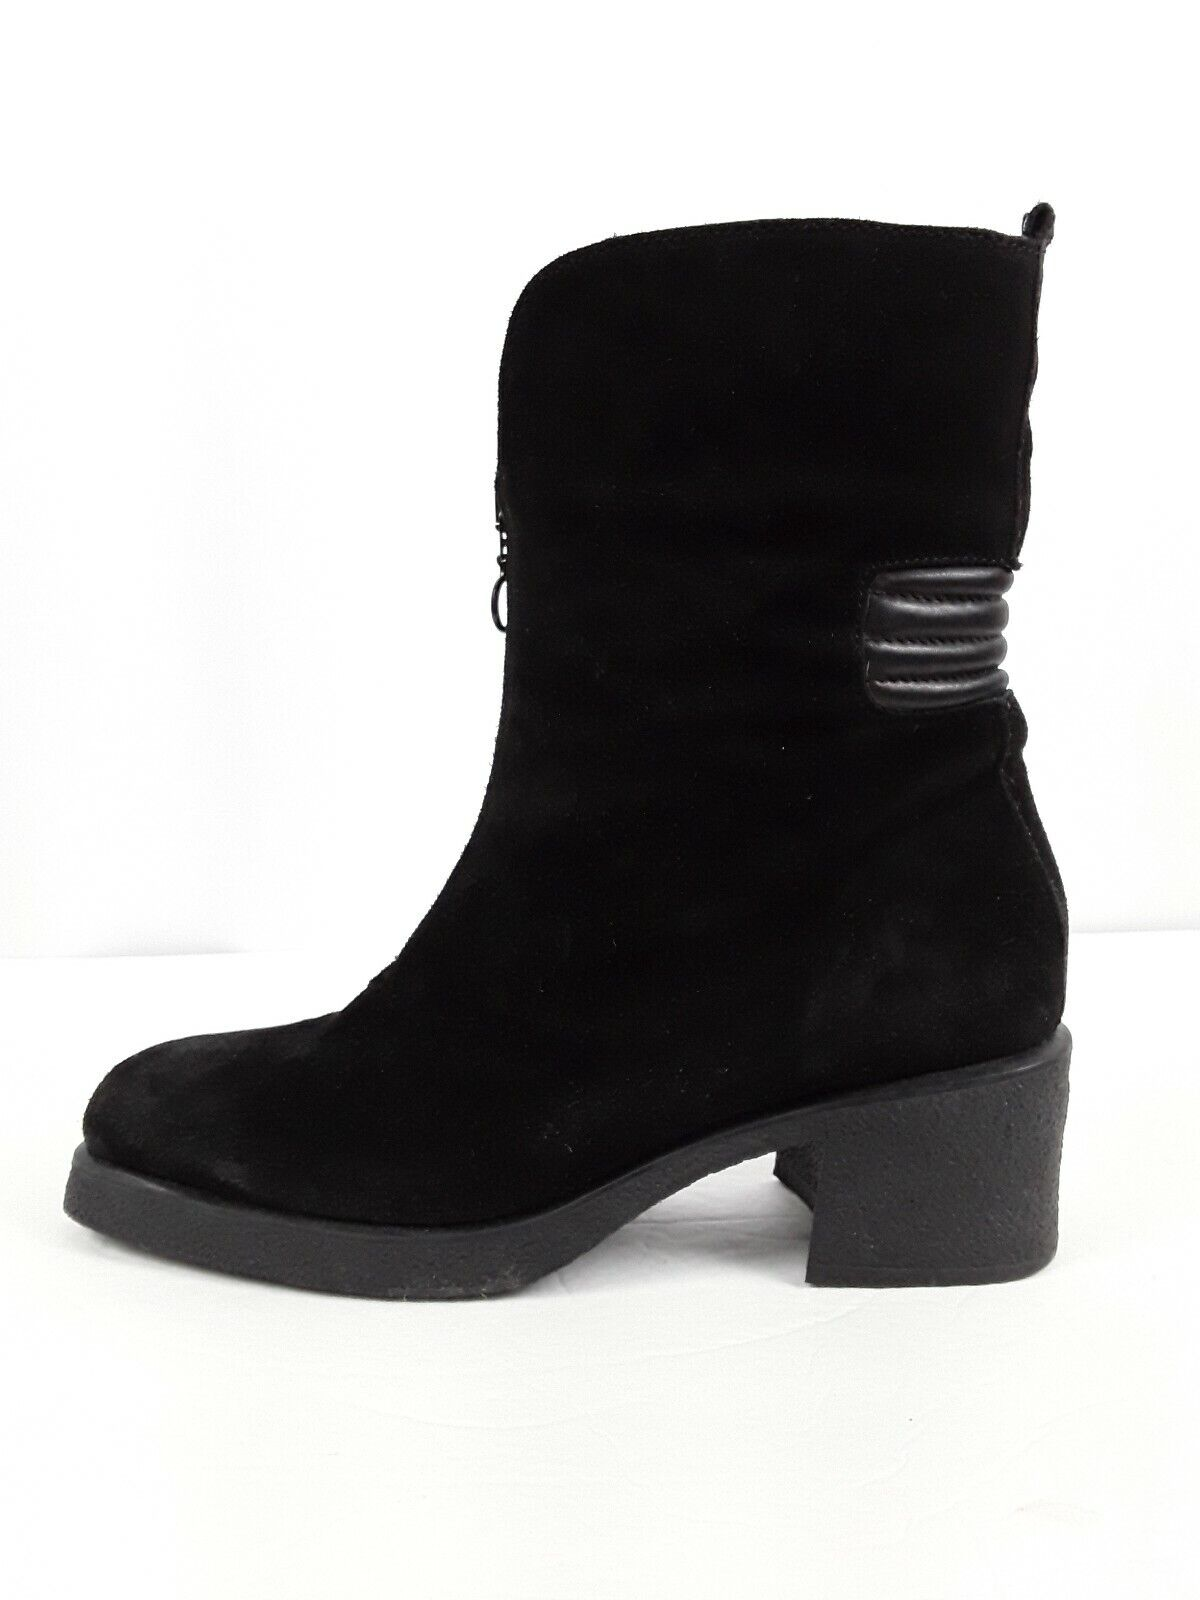 Aquatalia Black Suede Front Zipper Boots Women's Size 9.5